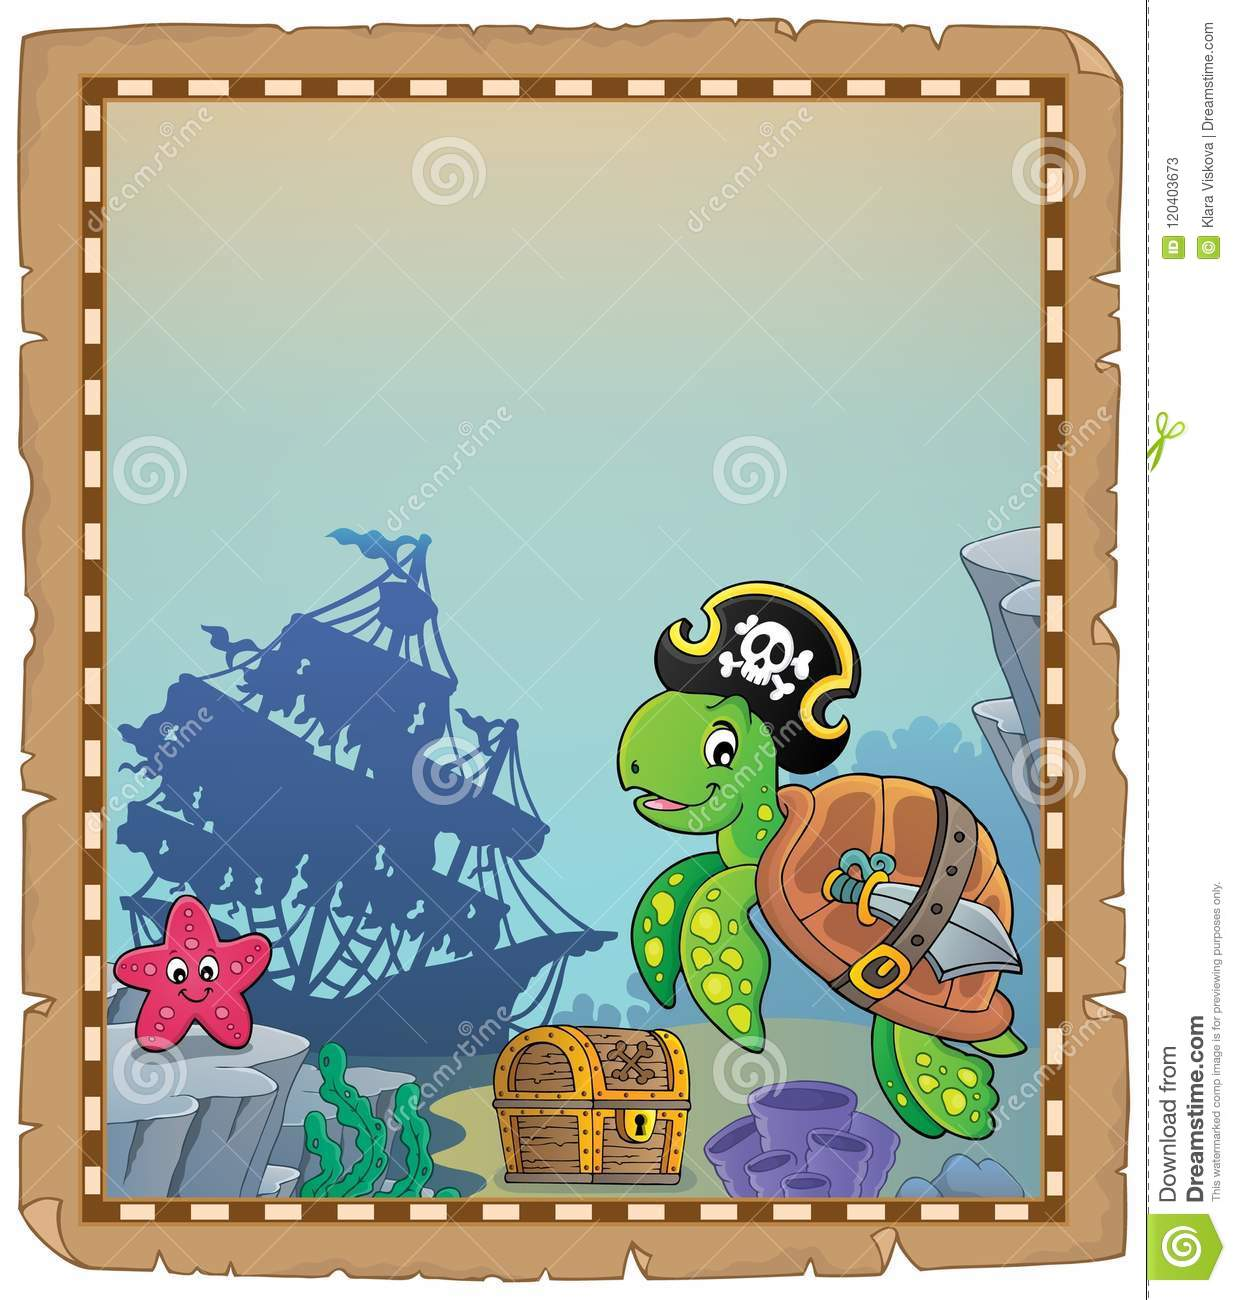 Pirate Turtle Theme Parchment 1 Stock Vector - Illustration of ocean. thematic: 120403673